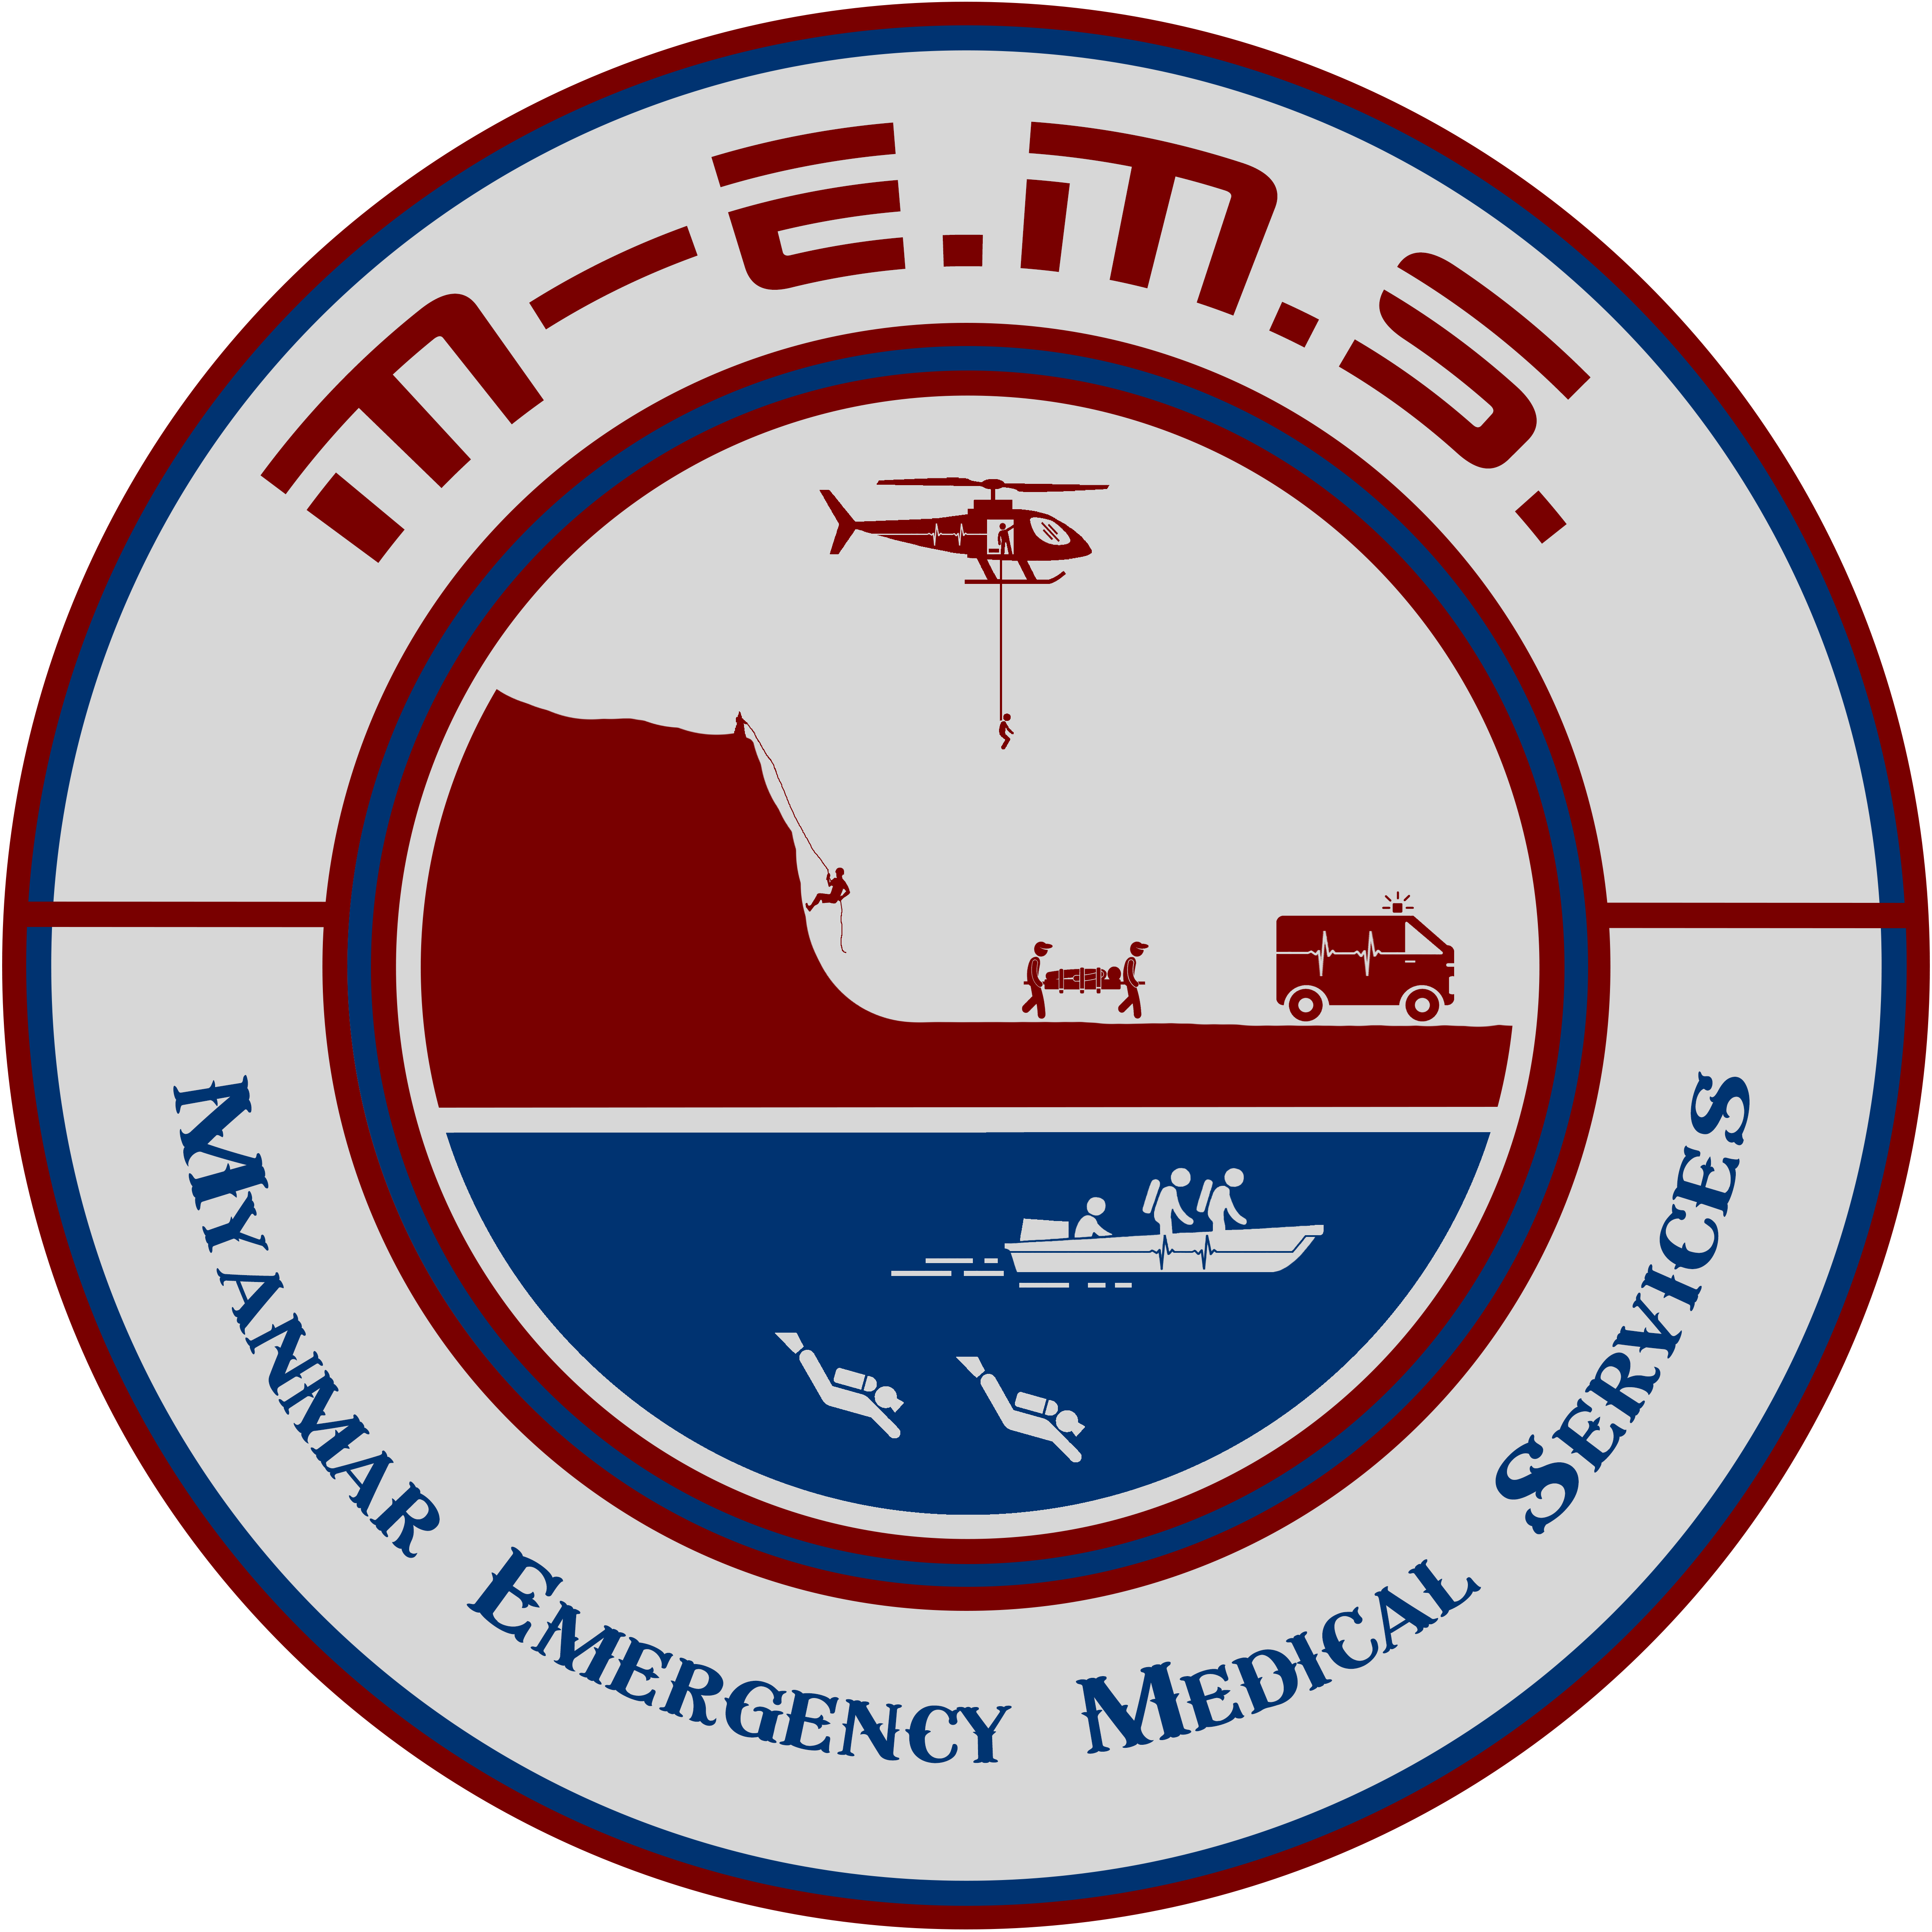 Employment Partners | South East Asia Prehospital ...